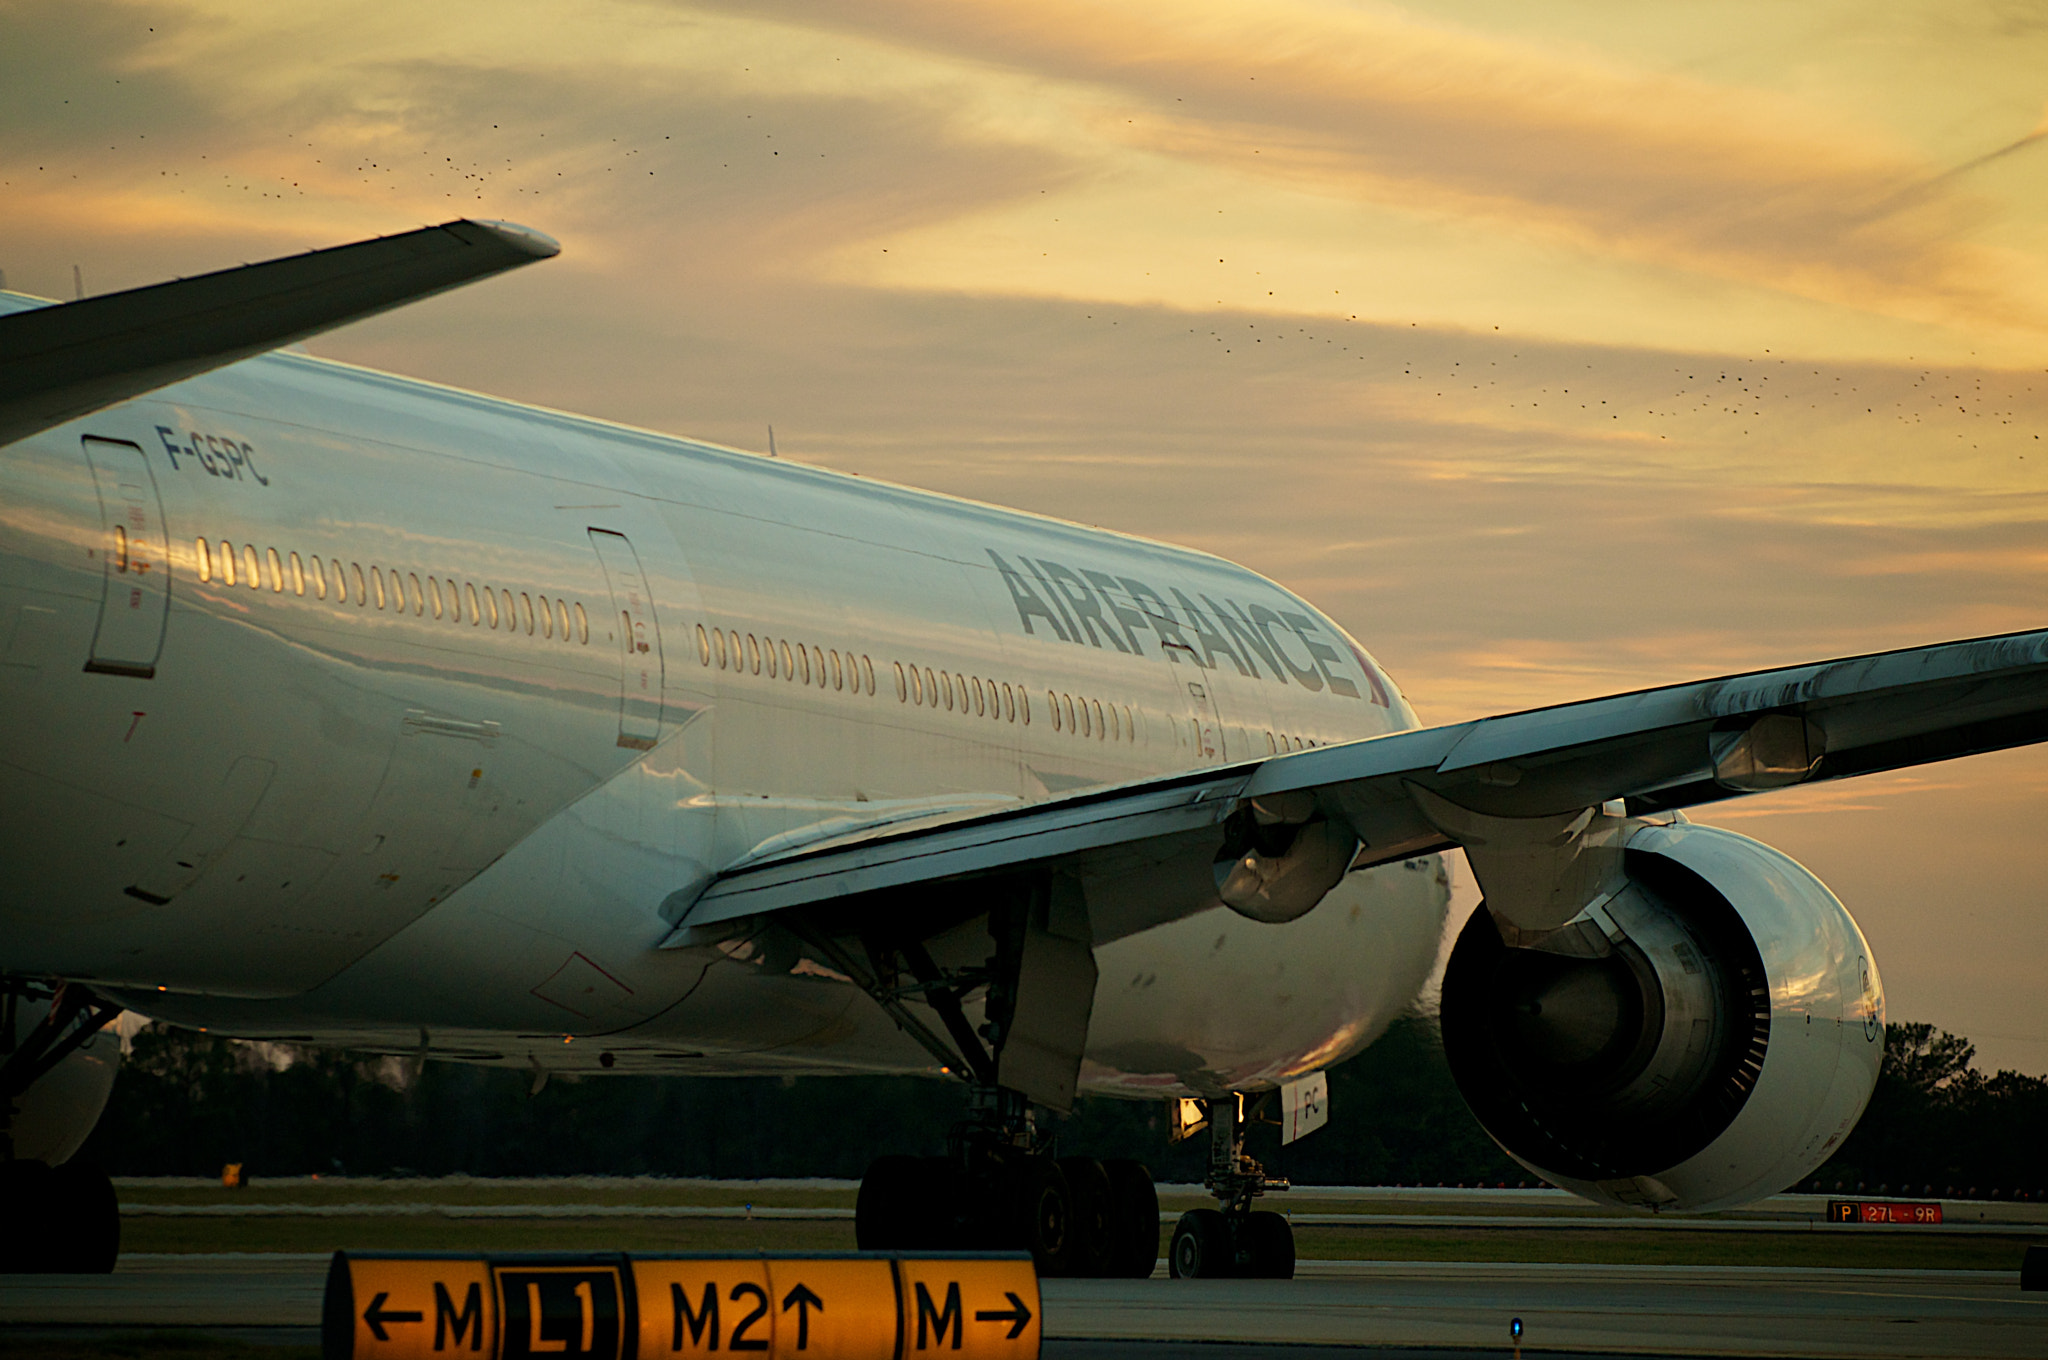 Photograph Waiting for Lift Off by ATL DOC on 500px